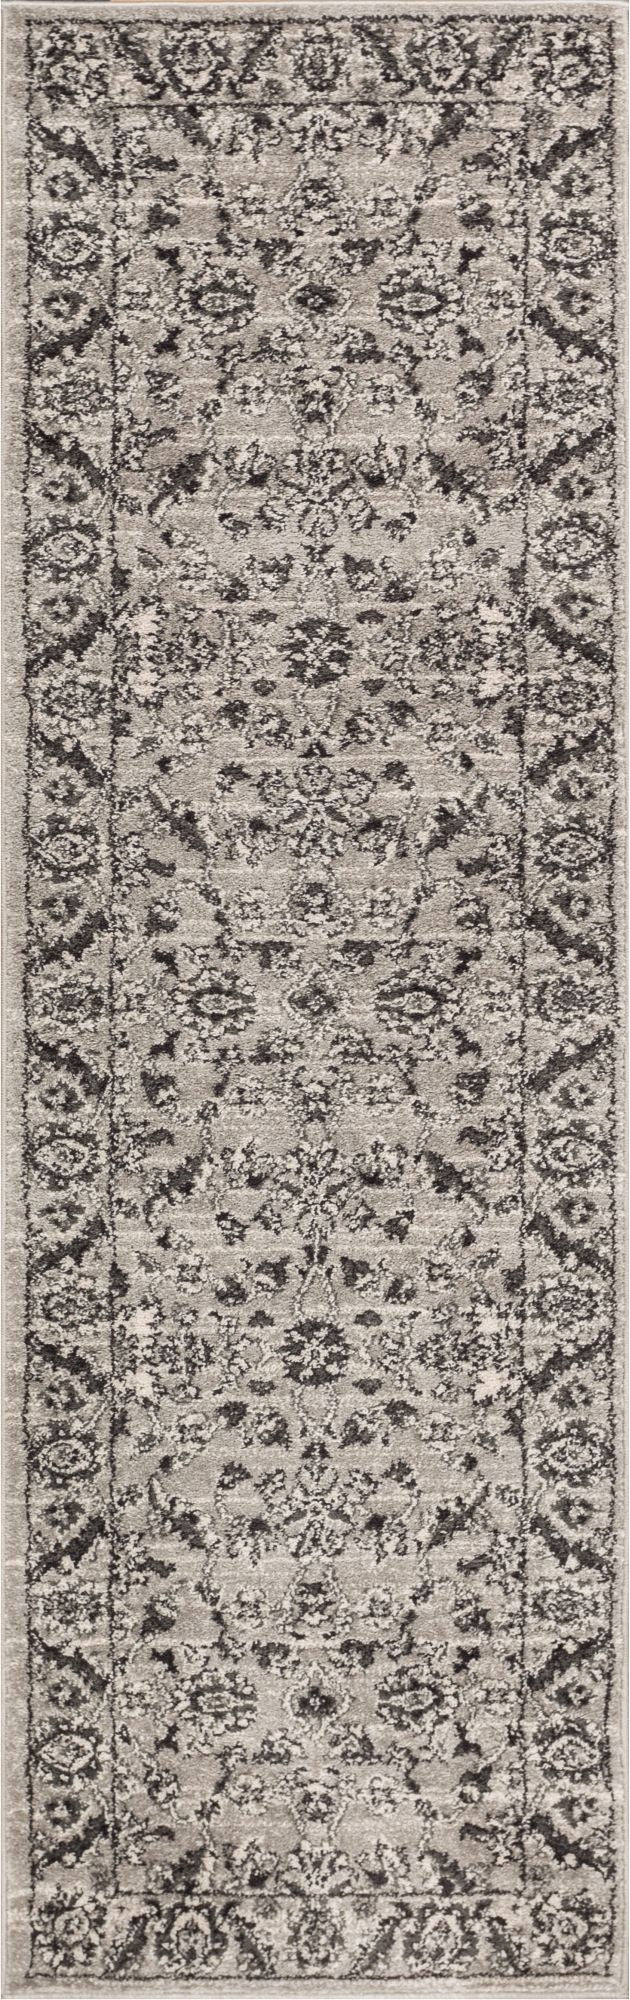 Carleton Grey Traditional Rug